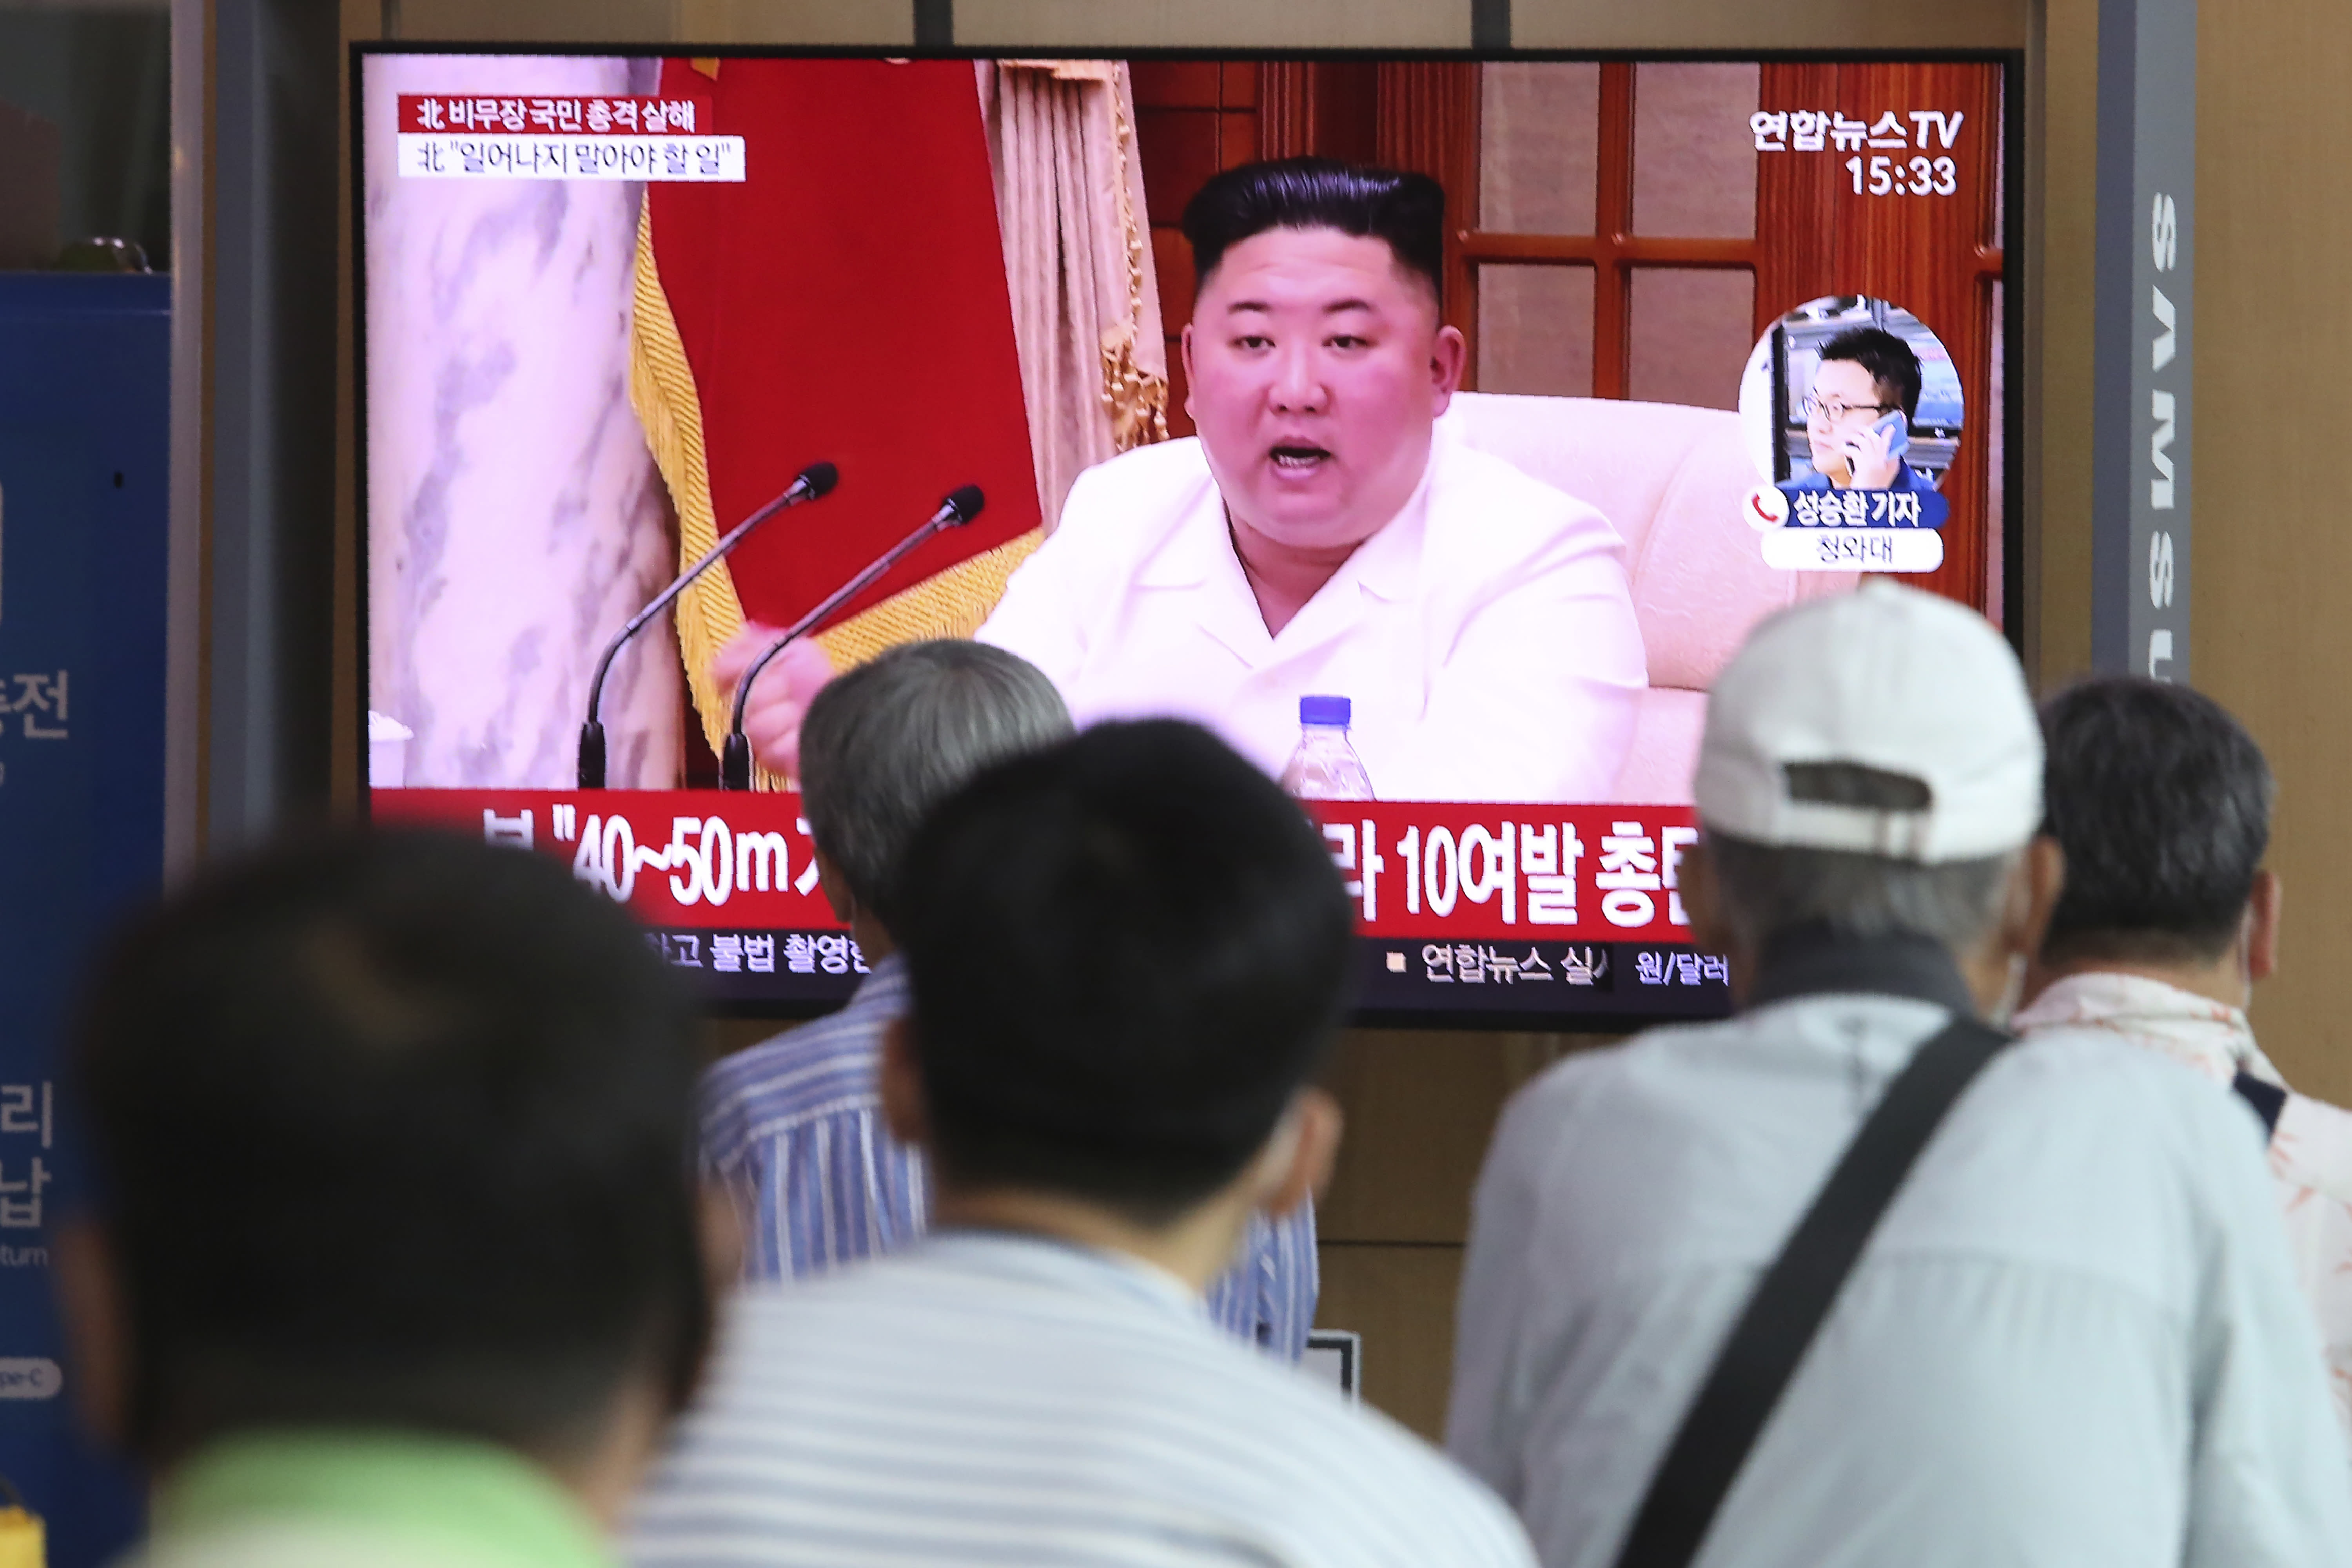 """People watch a screen showing a file image of North Korean leader Kim Jong Un during a news program at the Seoul Railway Station in Seoul, South Korea, Friday, Sept. 25, 2020. Kim apologized Friday over the killing of a South Korea official near the rivals' disputed sea boundary, saying he's """"very sorry"""" about the """"unexpected"""" and """"unfortunate"""" incident, South Korean officials said Friday. (AP Photo/Ahn Young-joon)"""